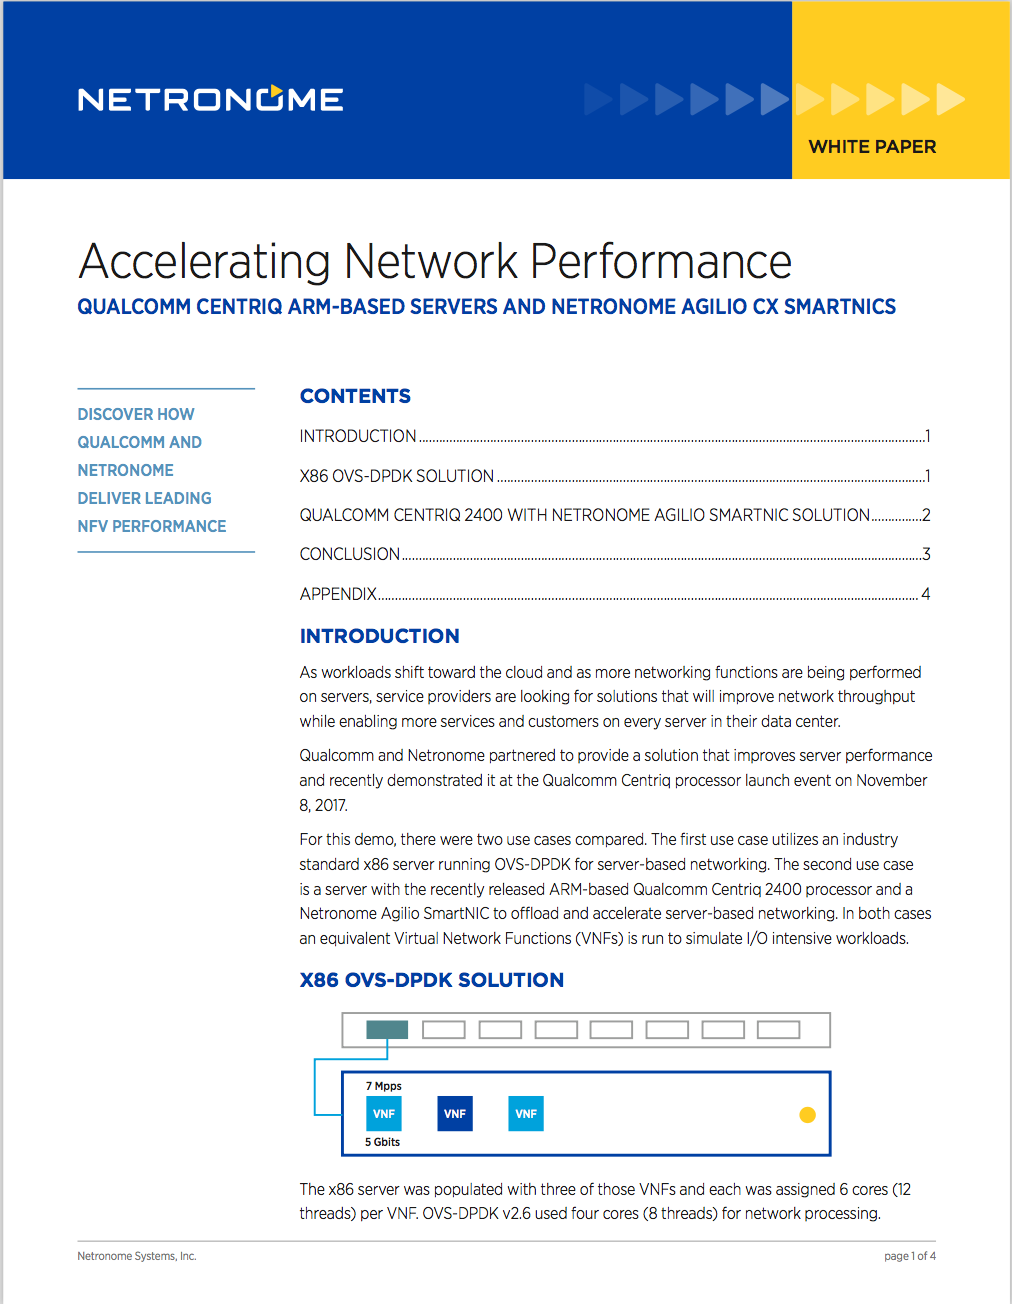 Accelerating Network Performance